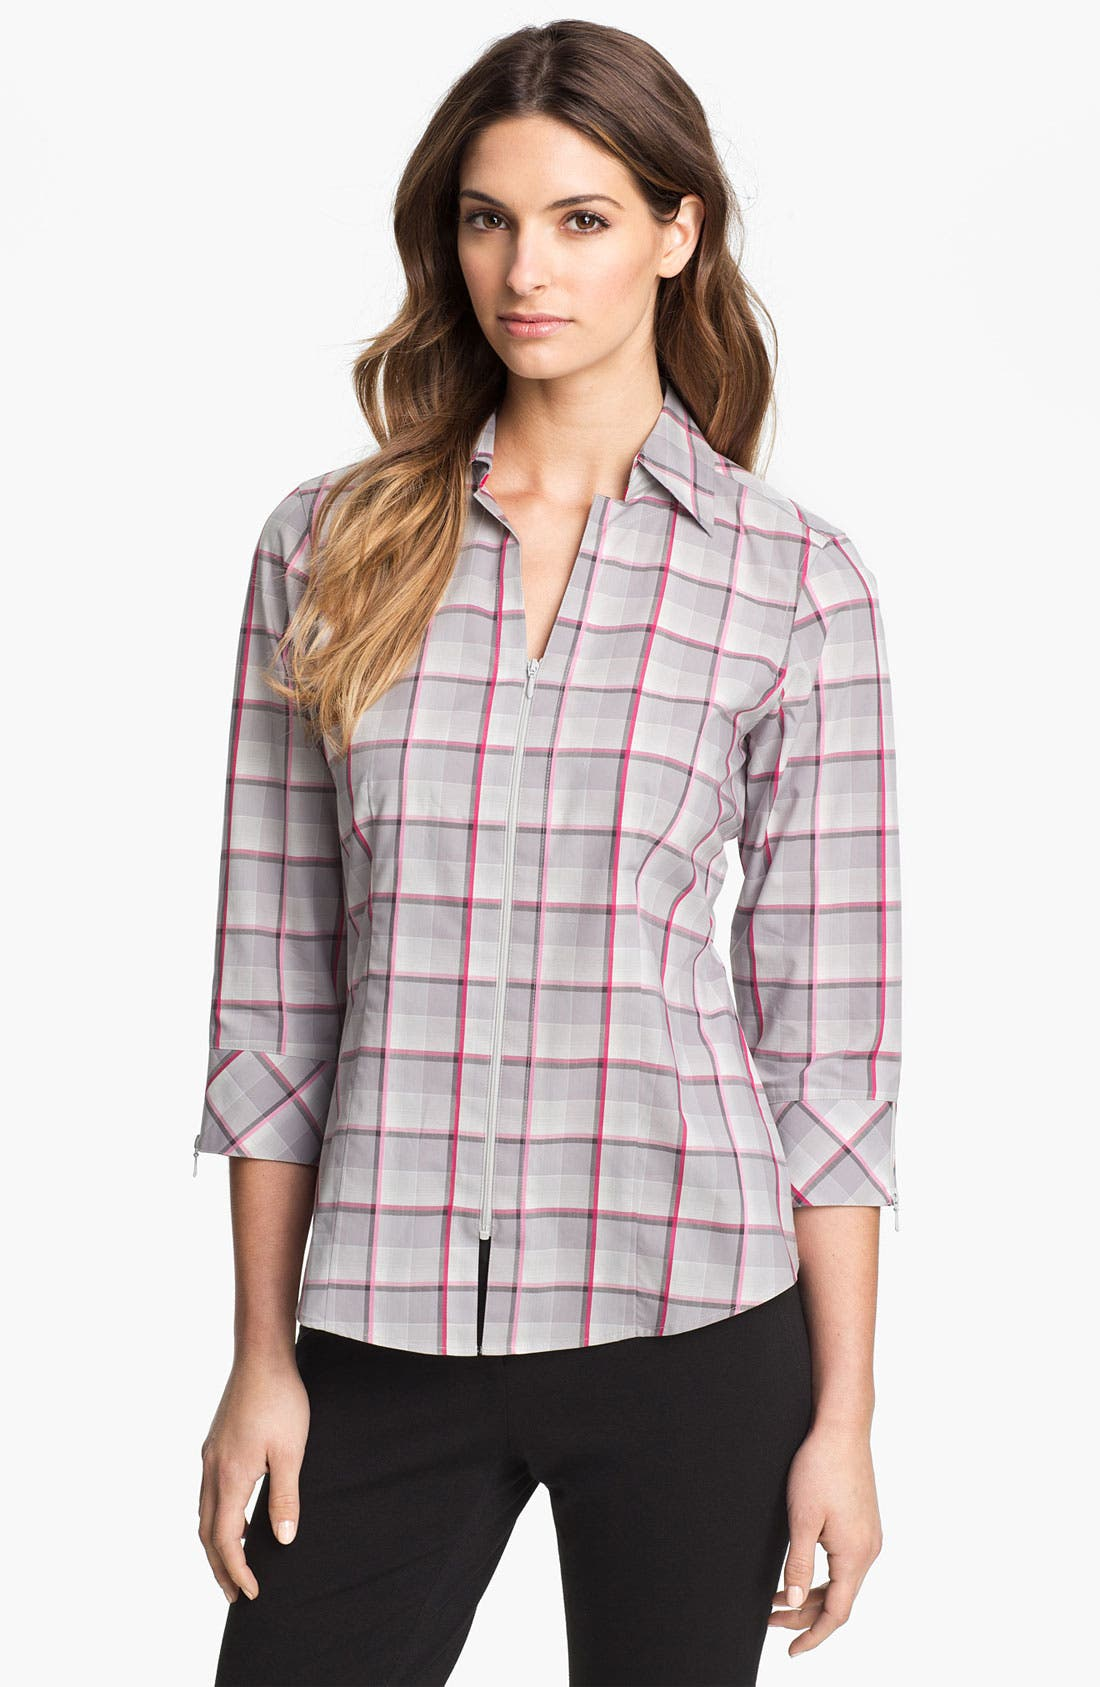 Alternate Image 1 Selected - Foxcroft Zip Front Multi Plaid Shirt (Petite)